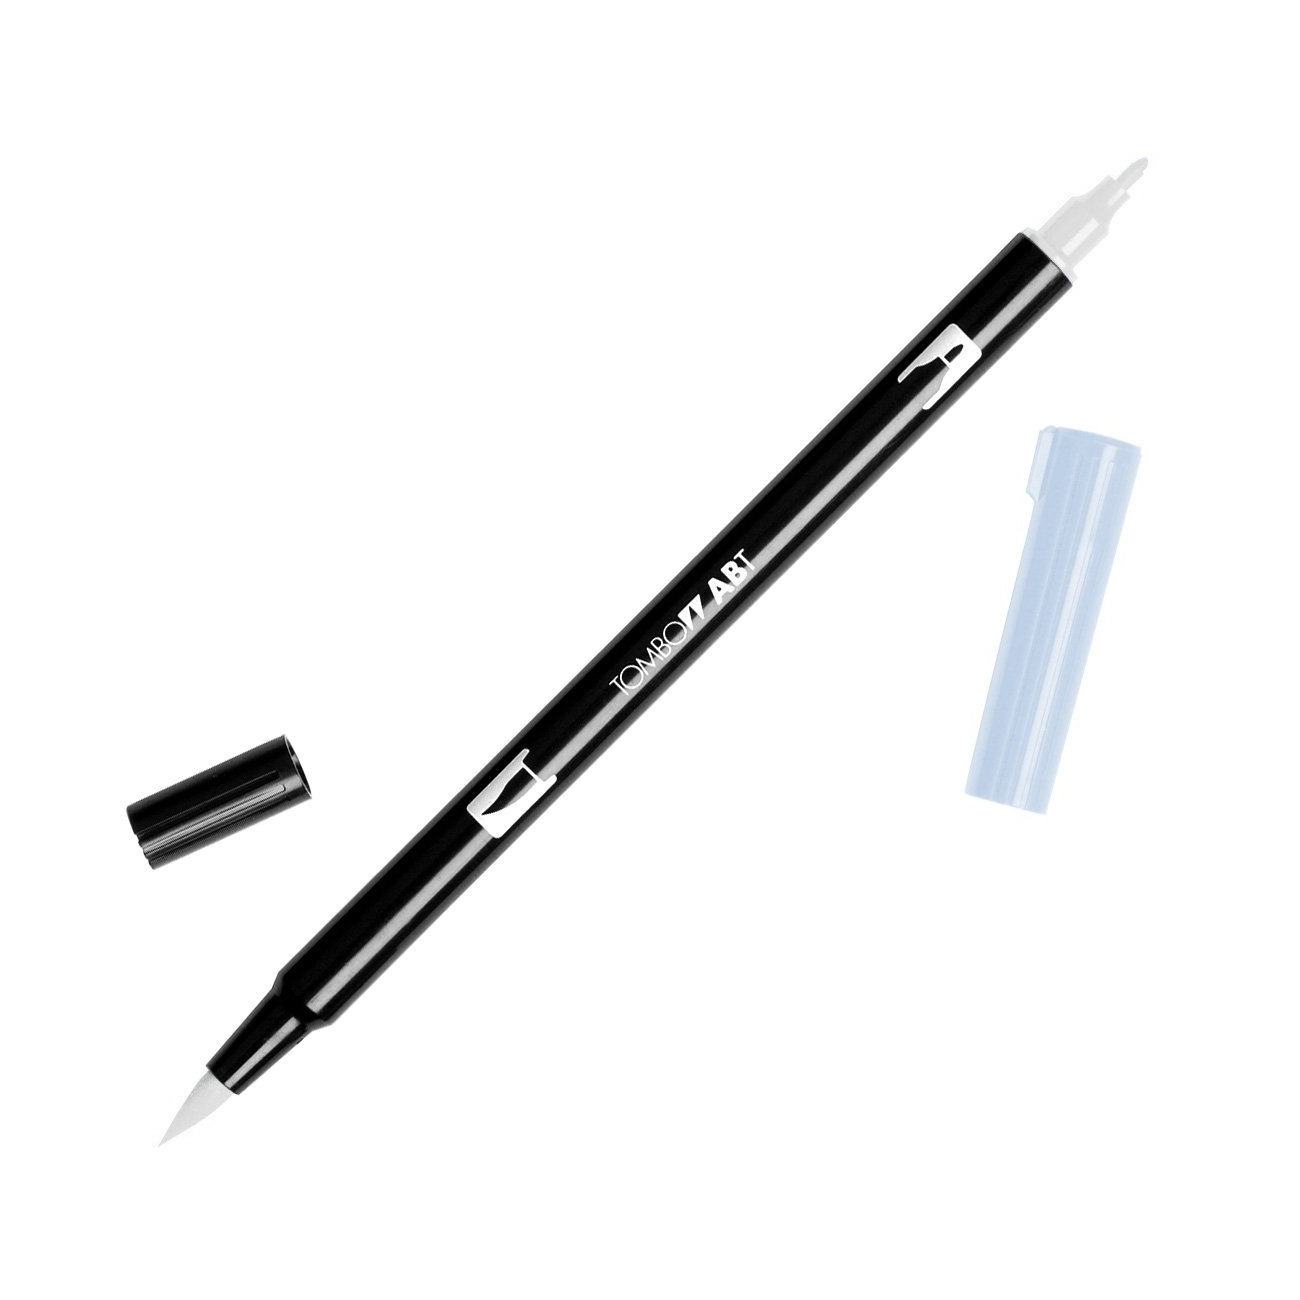 Tombow Dual Brush Pen N00 Colorless Blender